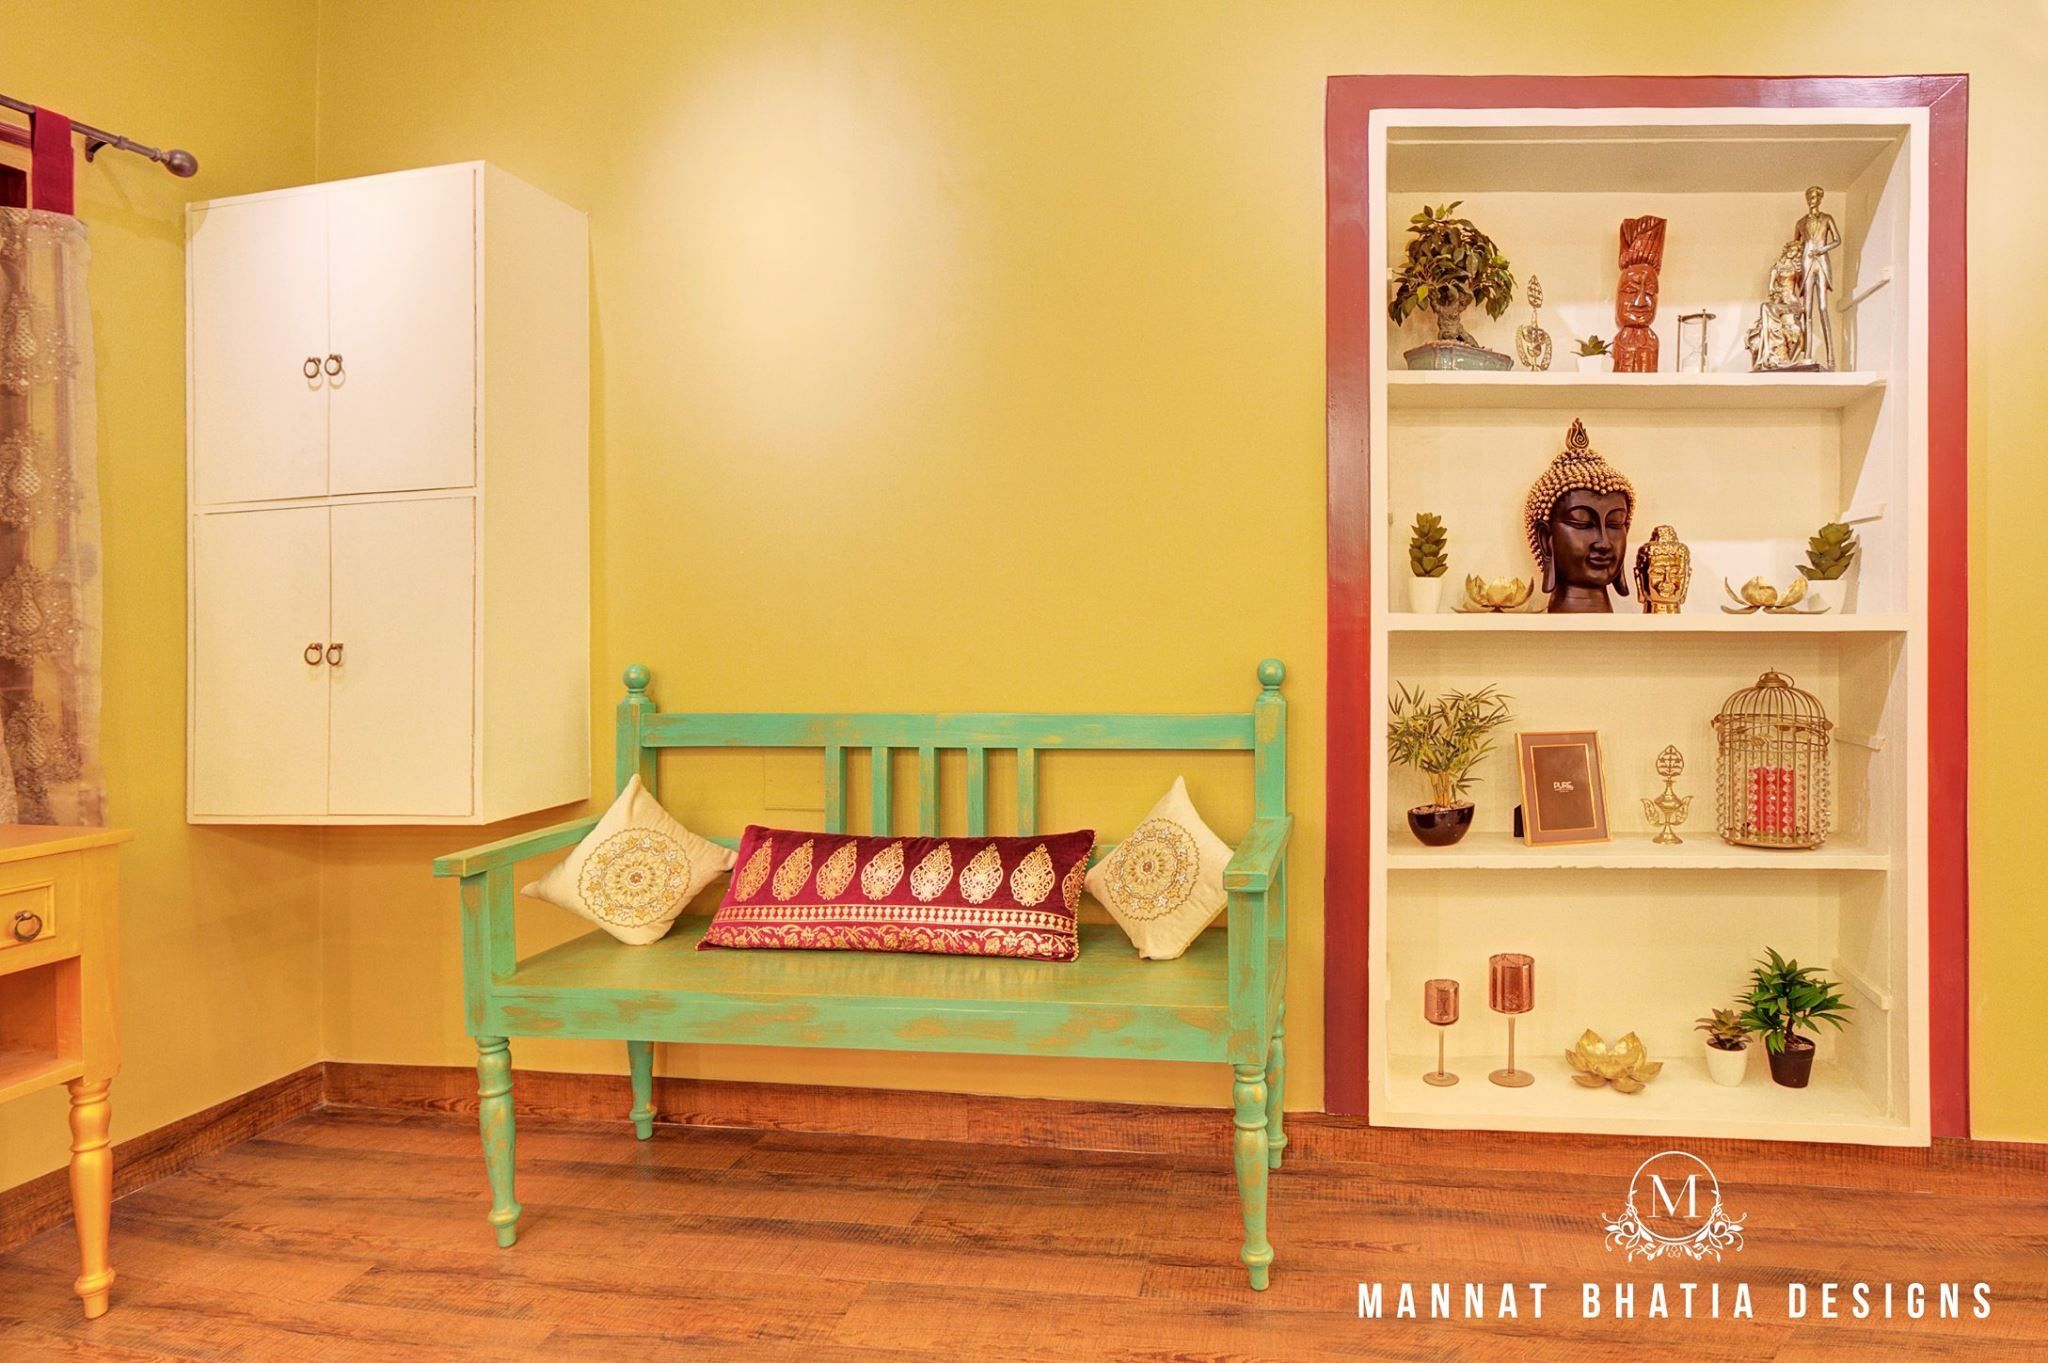 This is a Make-up \'Studio\' for Mrs Simmy Makwana in Ahmedabad, India ...